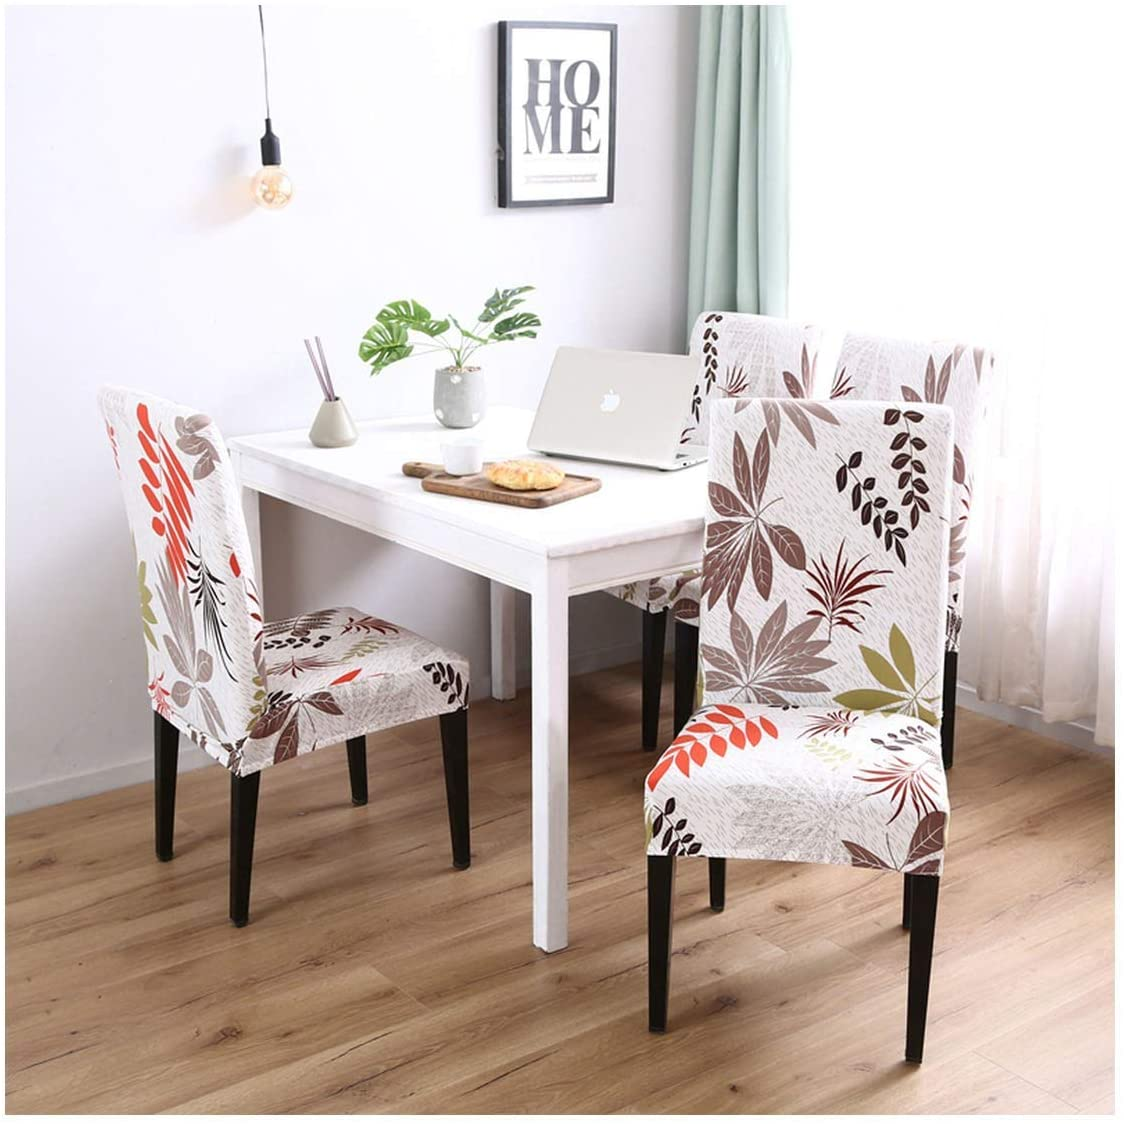 ECROZS Office Chair Covers for Dining Room Wedding Chair Cover Elastic Leaves Printed,Color 22,1 pc